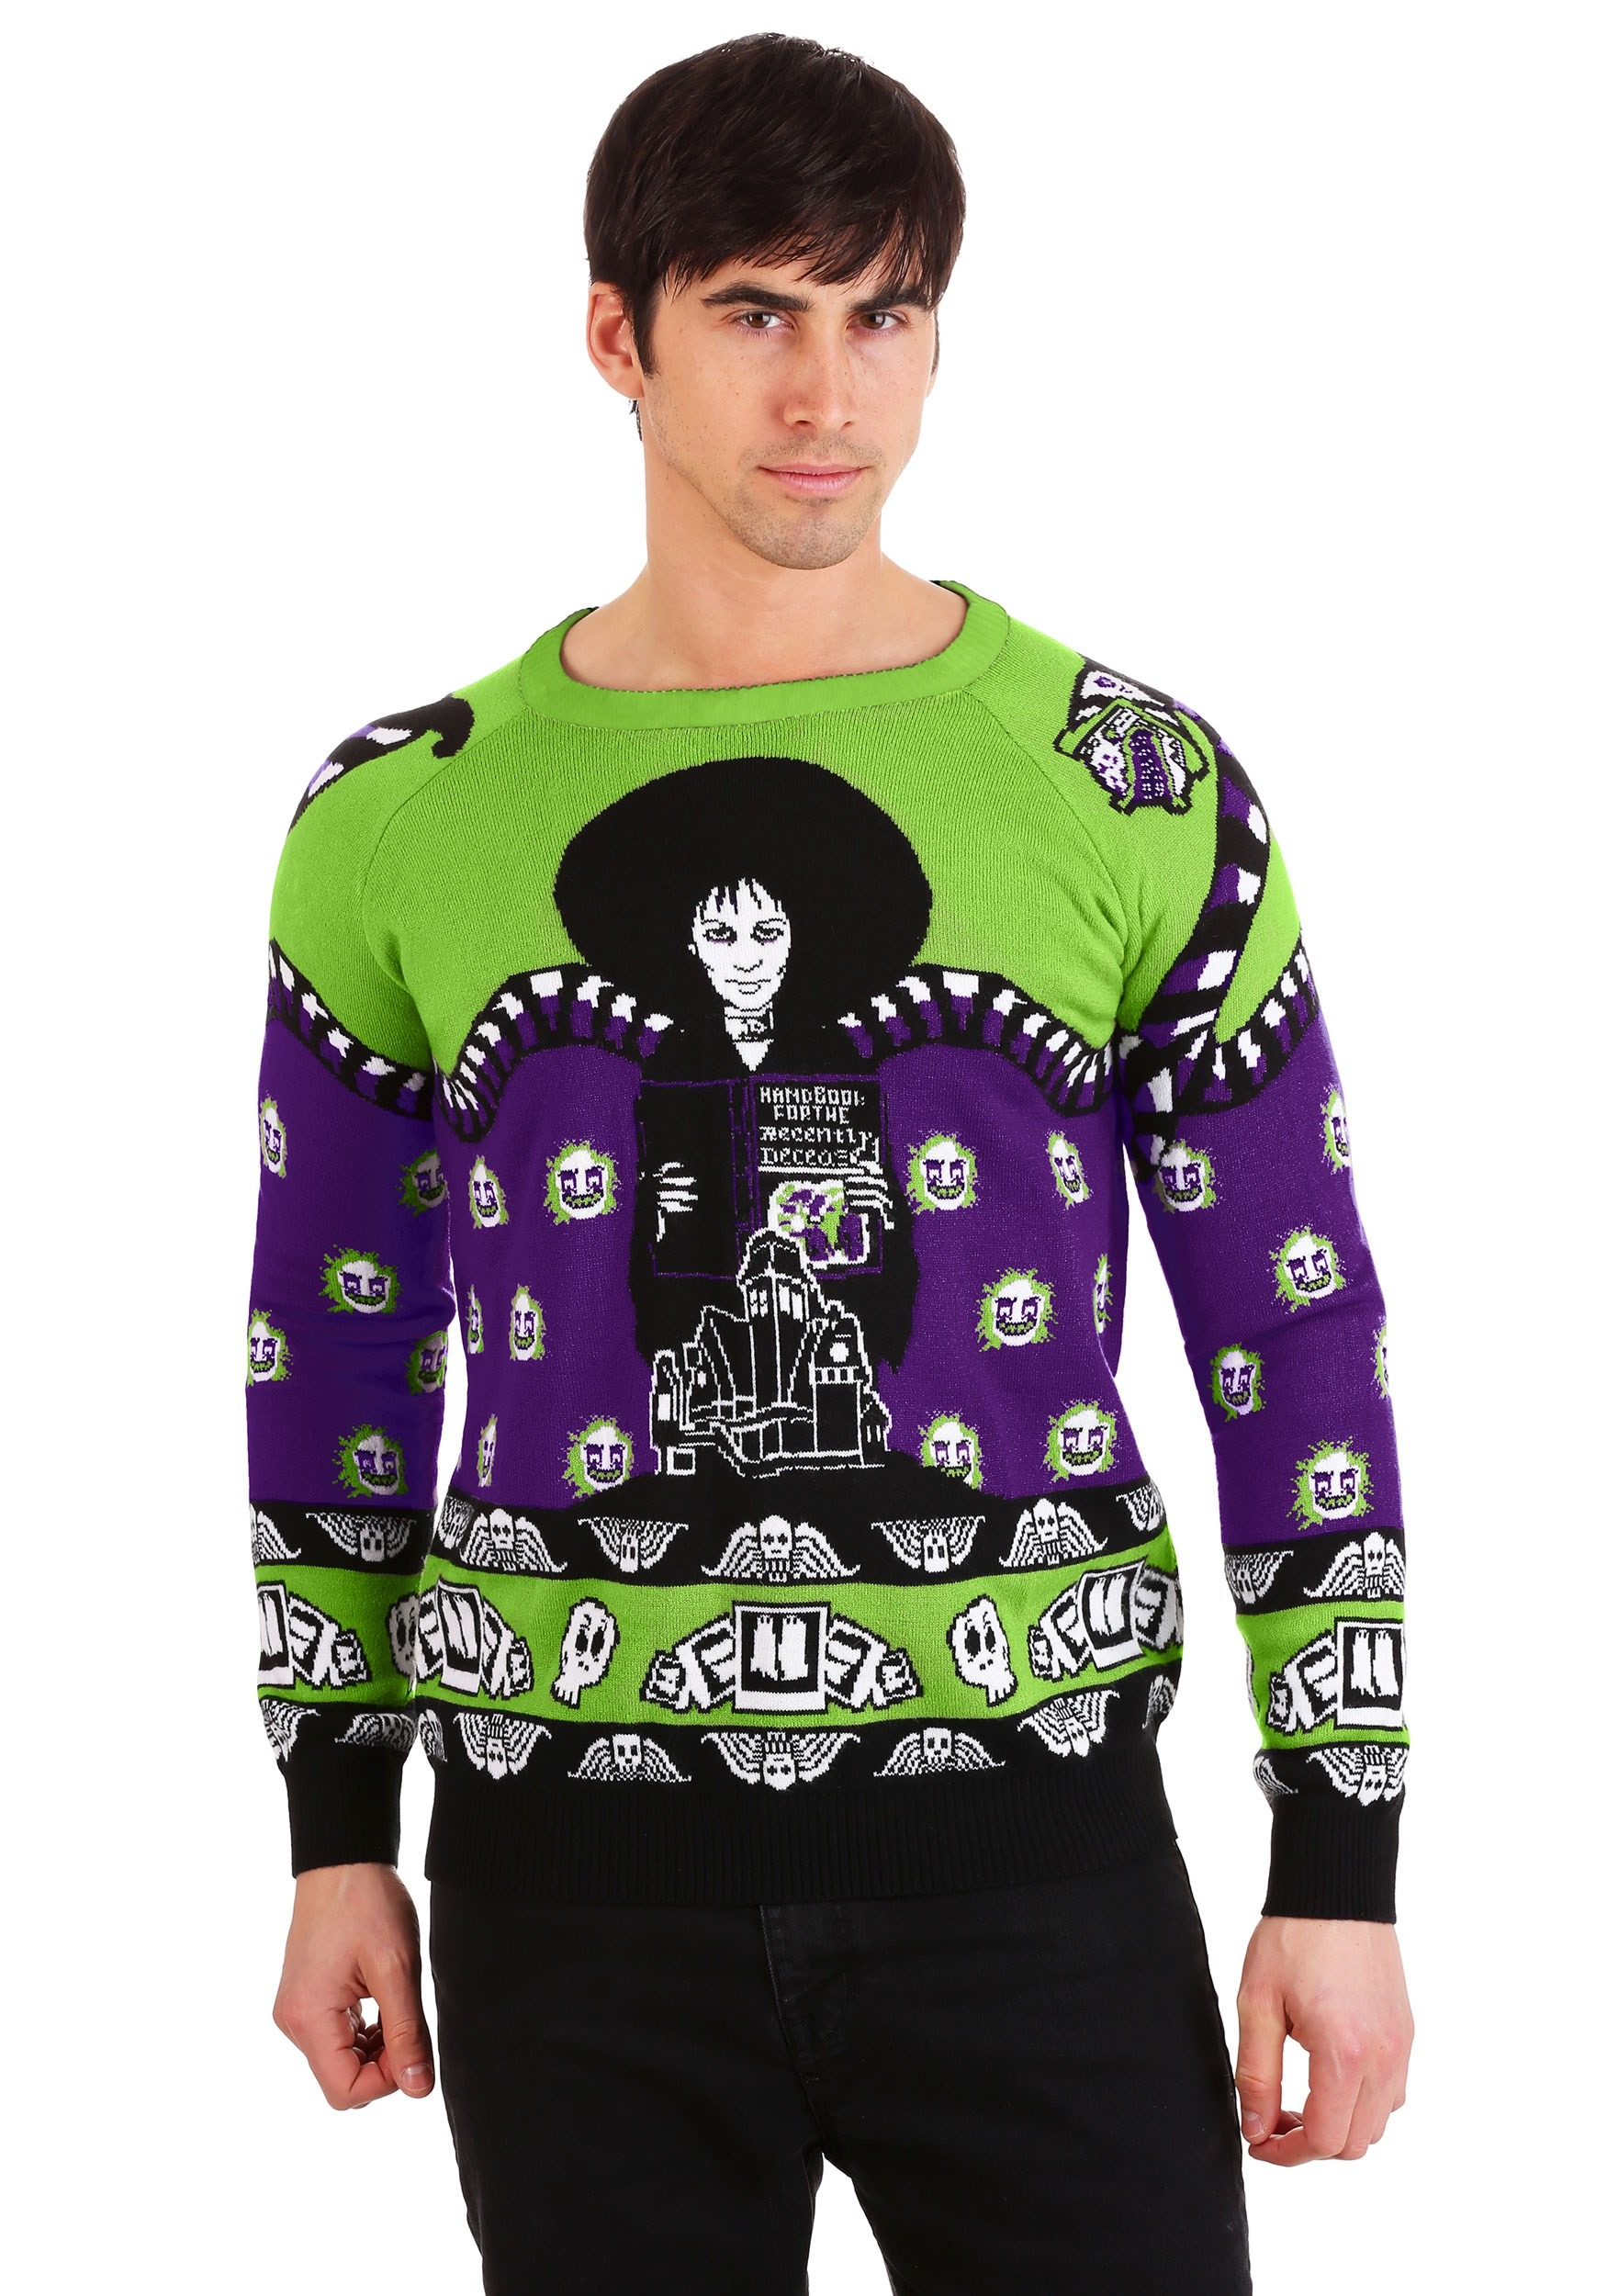 Beetlejuice Lydia Deetz Ugly Halloween Sweater for Adults